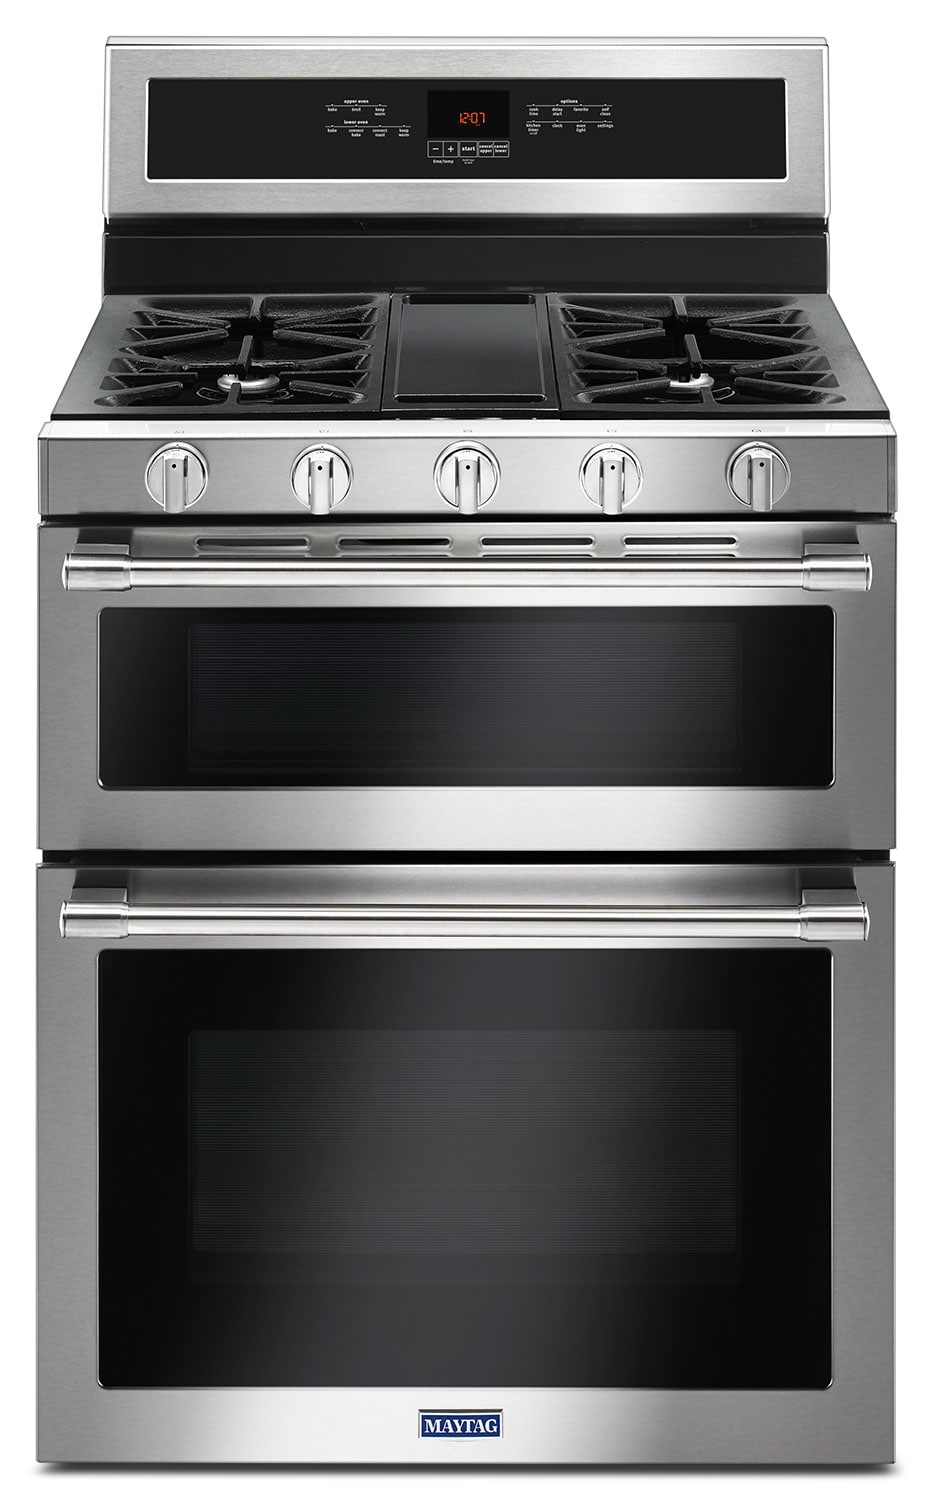 Maytag 6.0 Cu. Ft. Double Oven Gas Range with Convection – MGT8800FZ